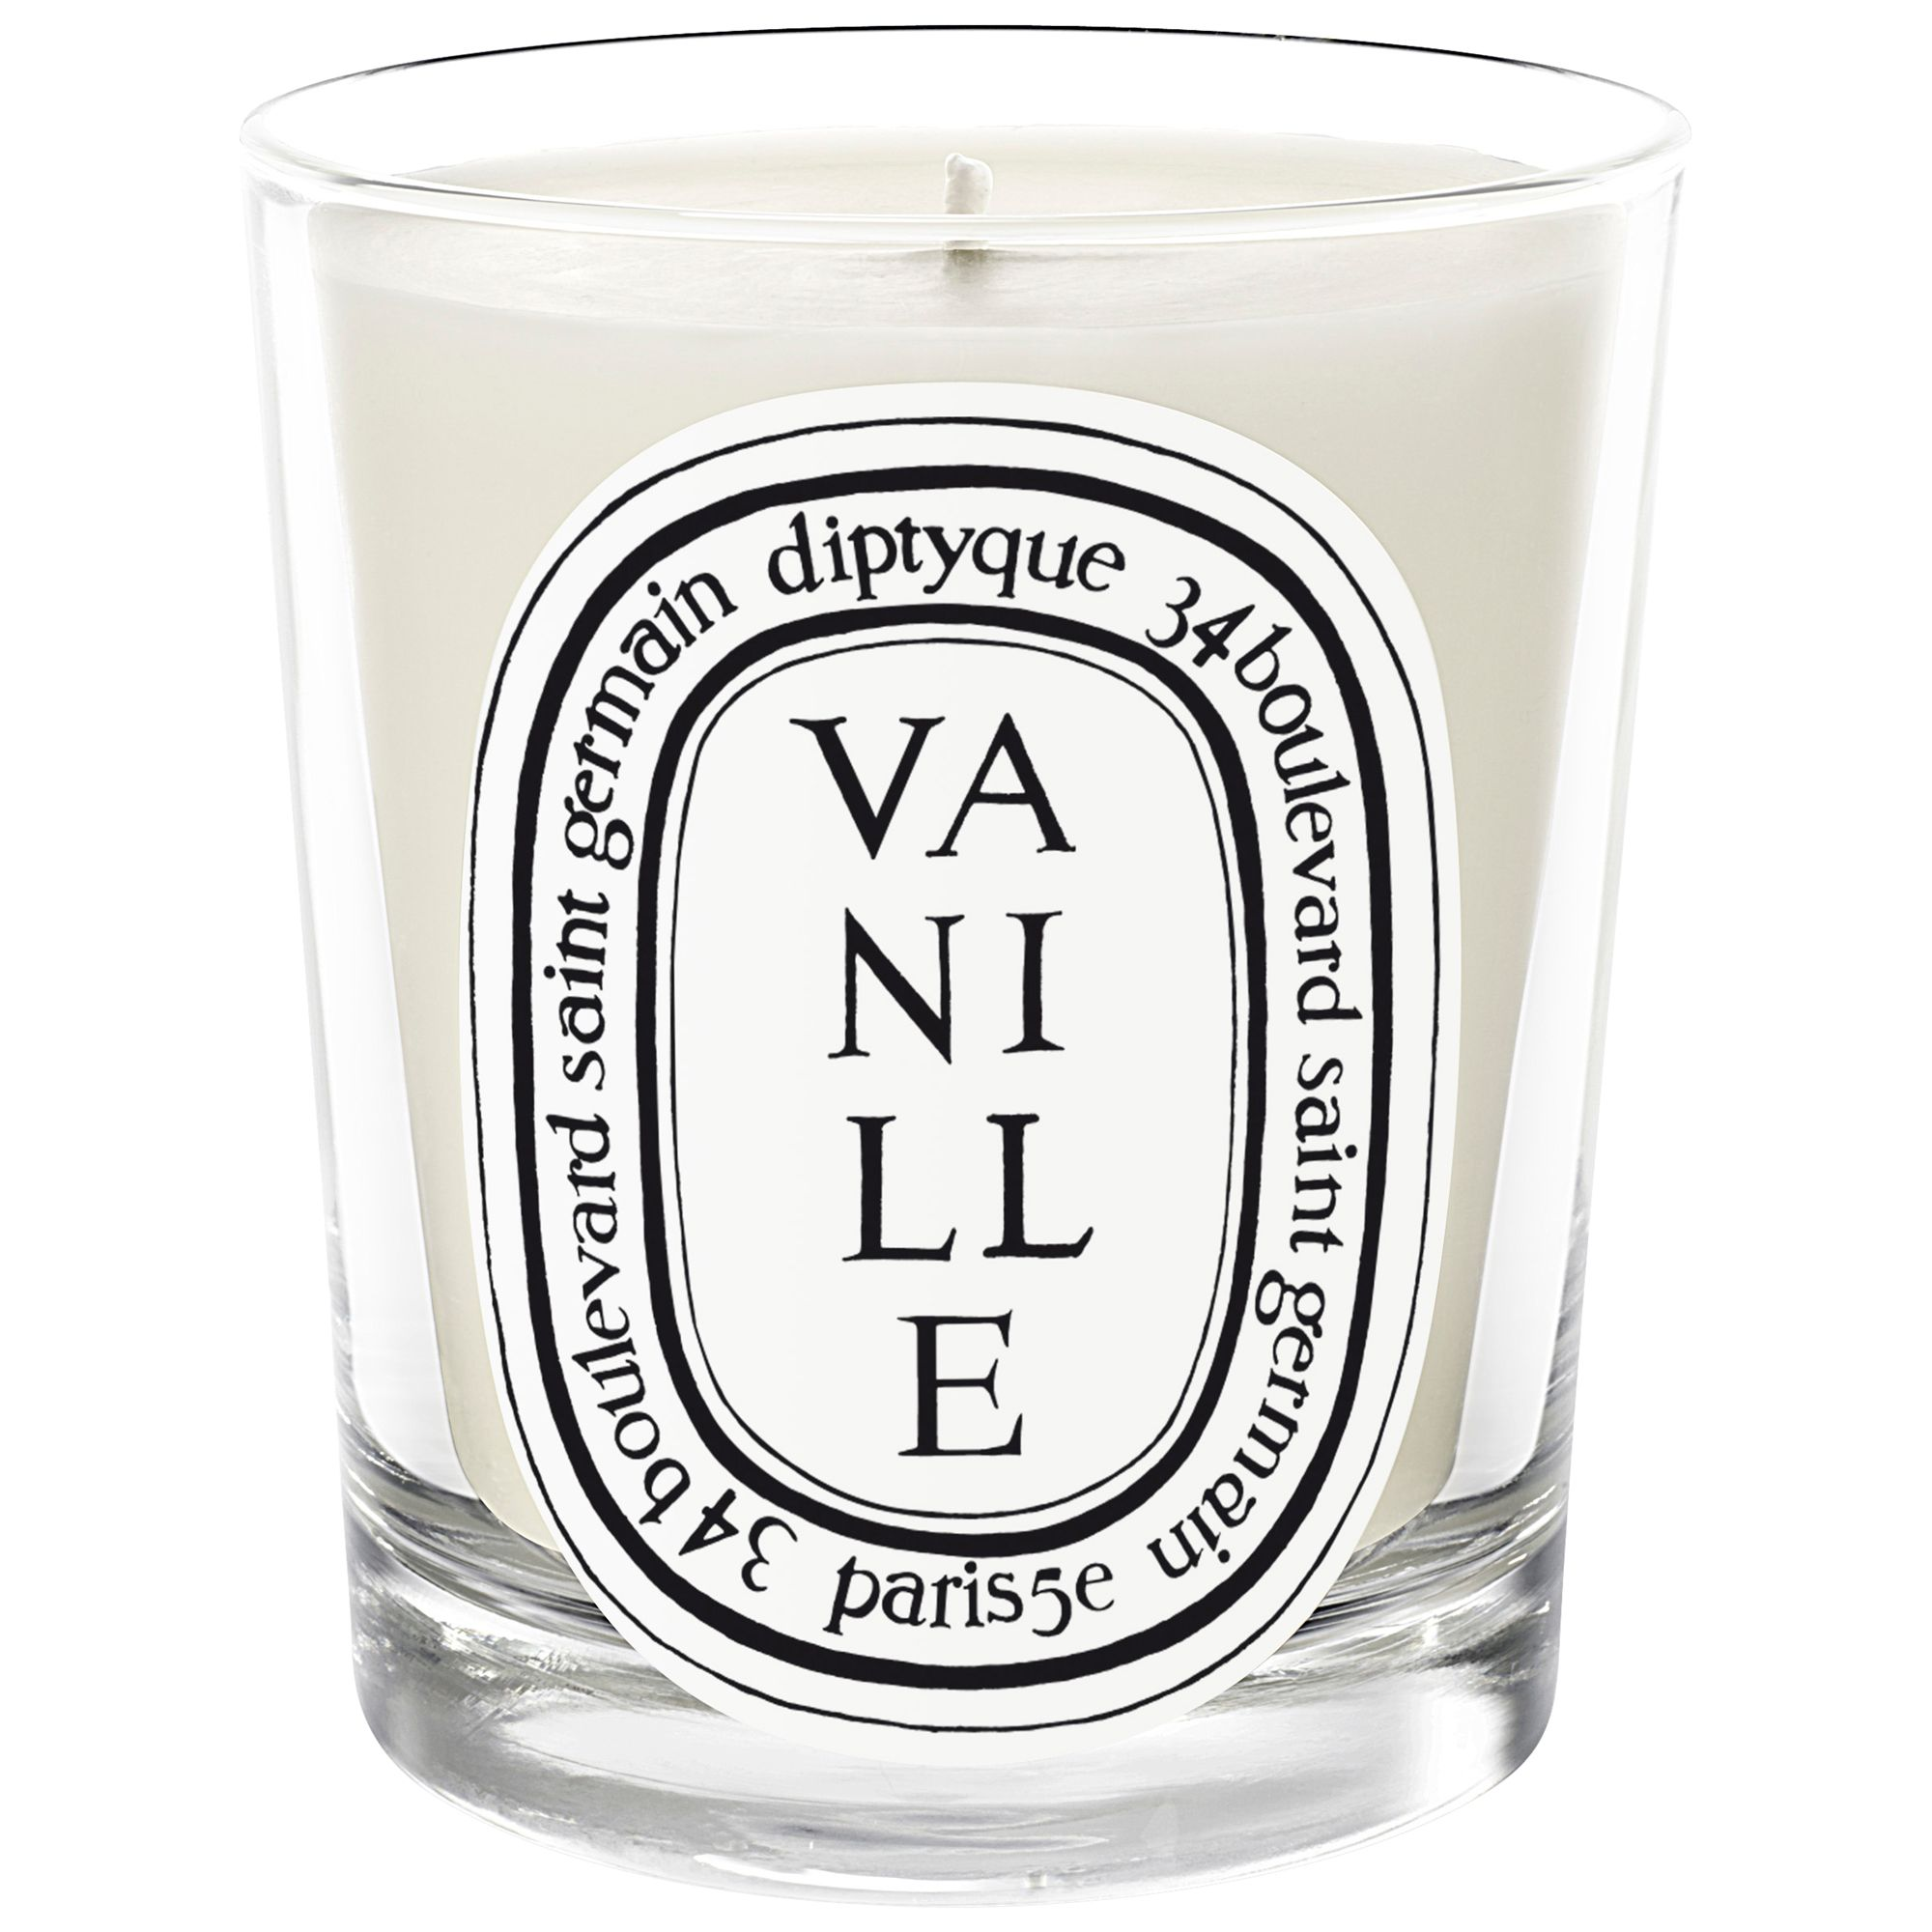 Diptyque Diptyque Vanille Scented Candle, 190g